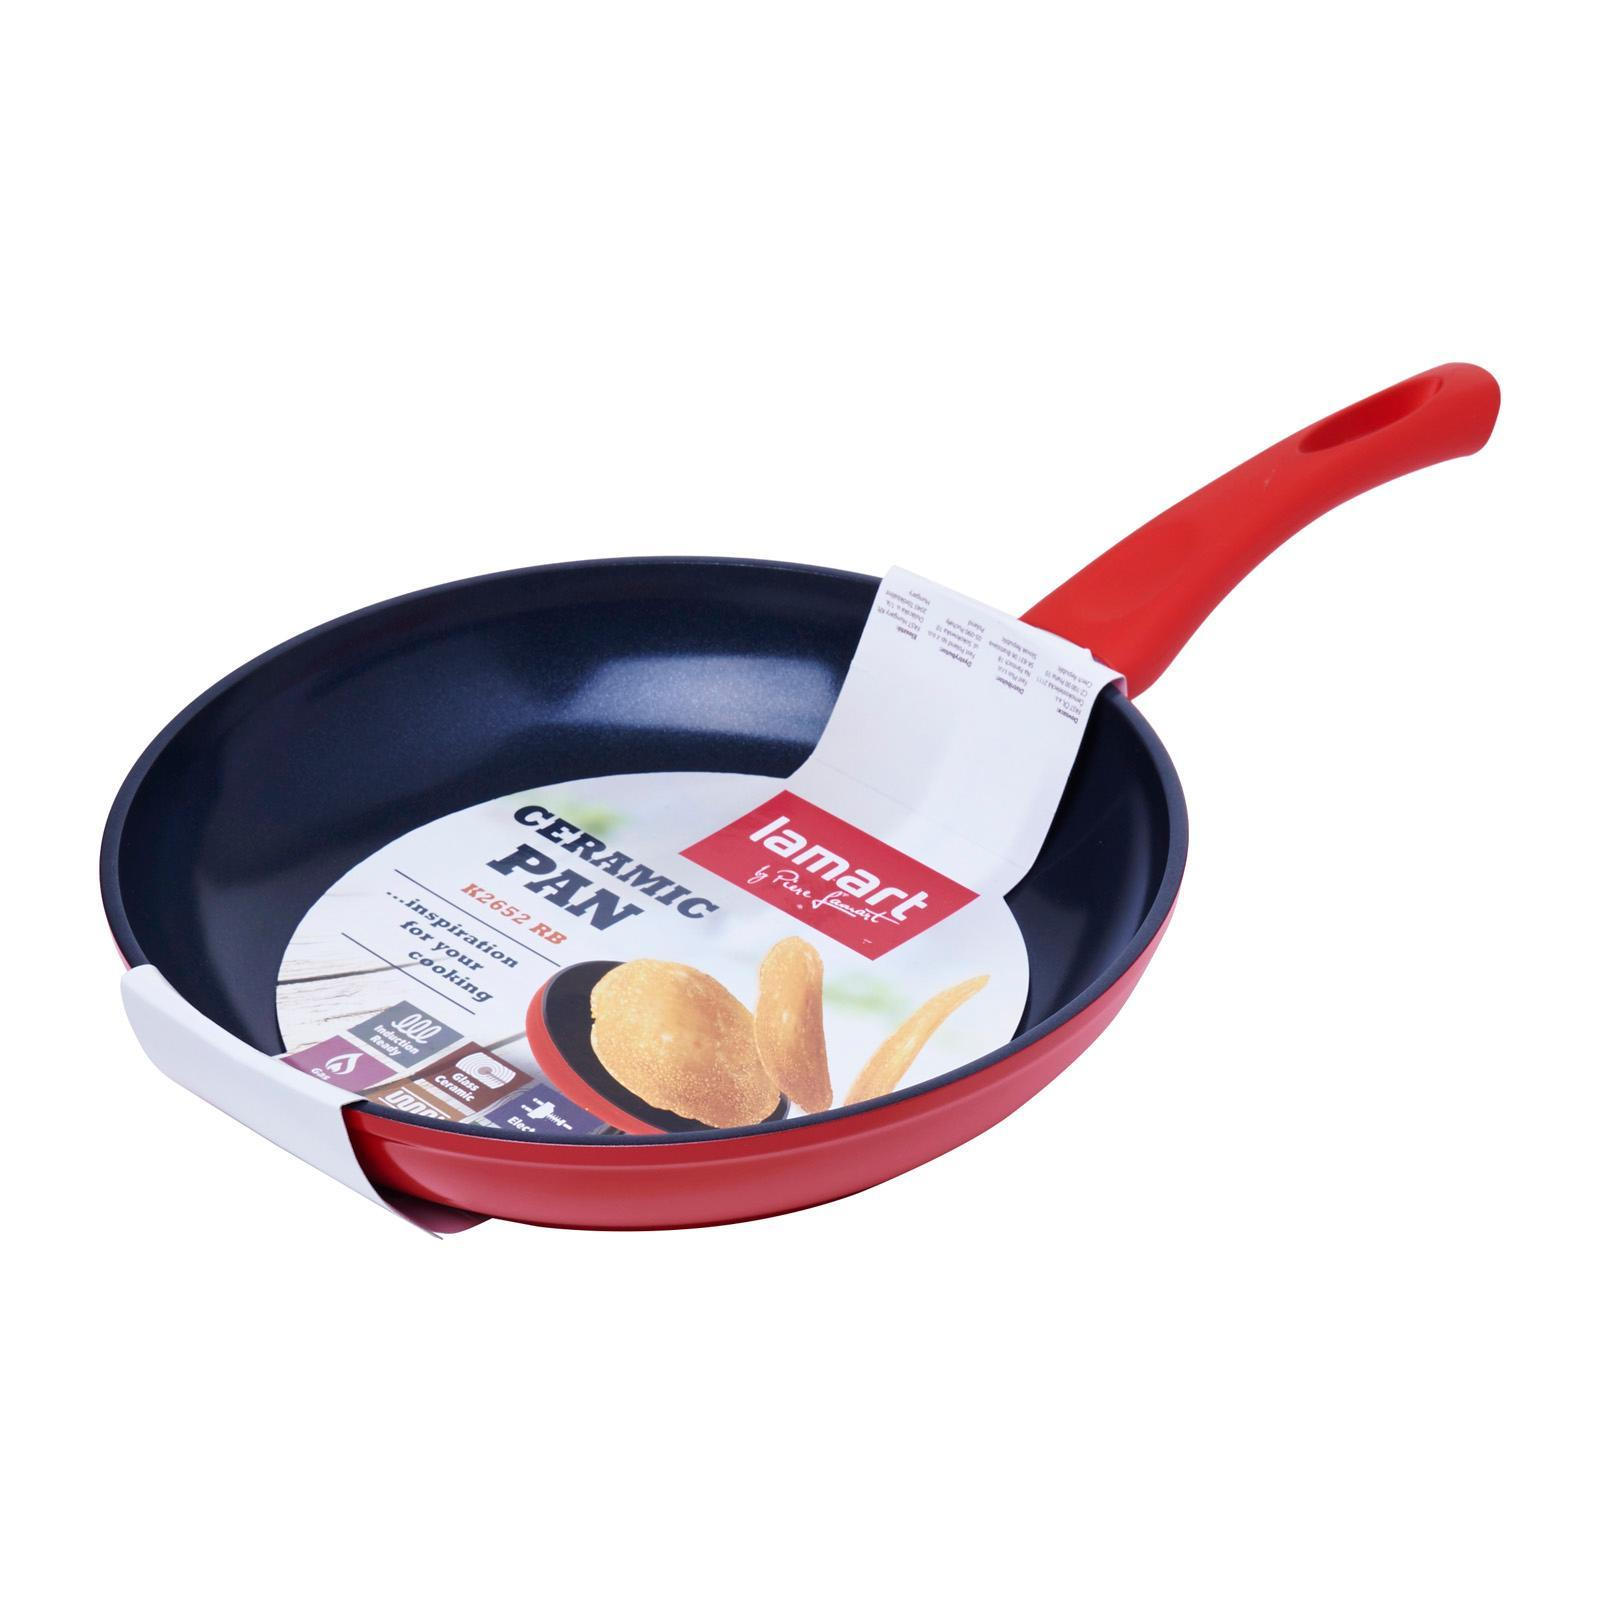 Lamart Induction Ready Ceramic Fry Pan 26/5.2Cm